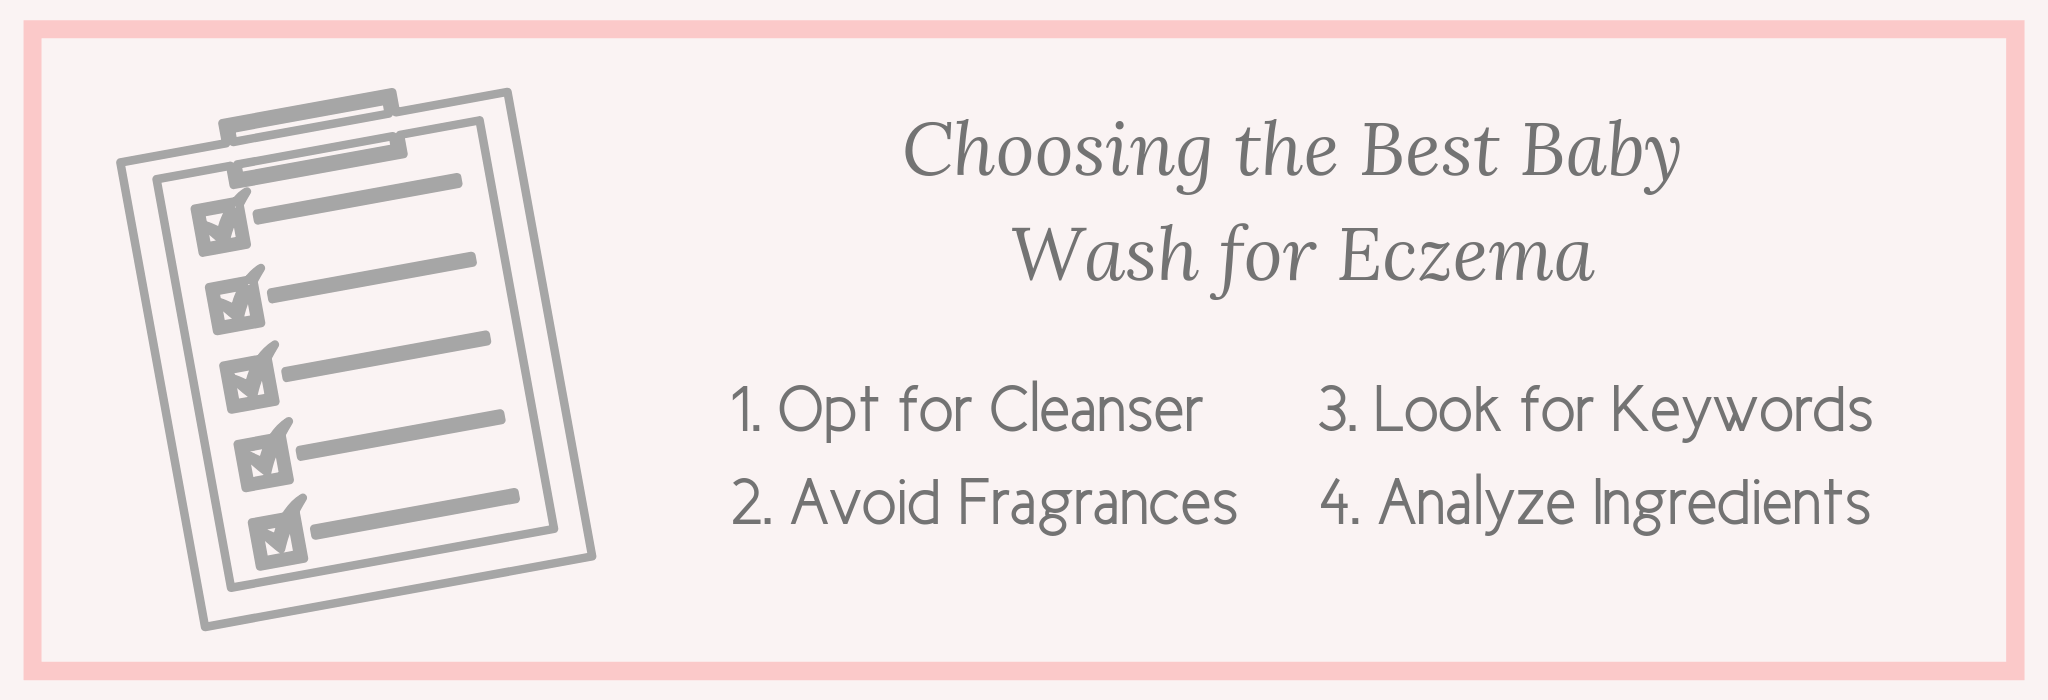 choosing-the-best-baby-wash-for-eczema